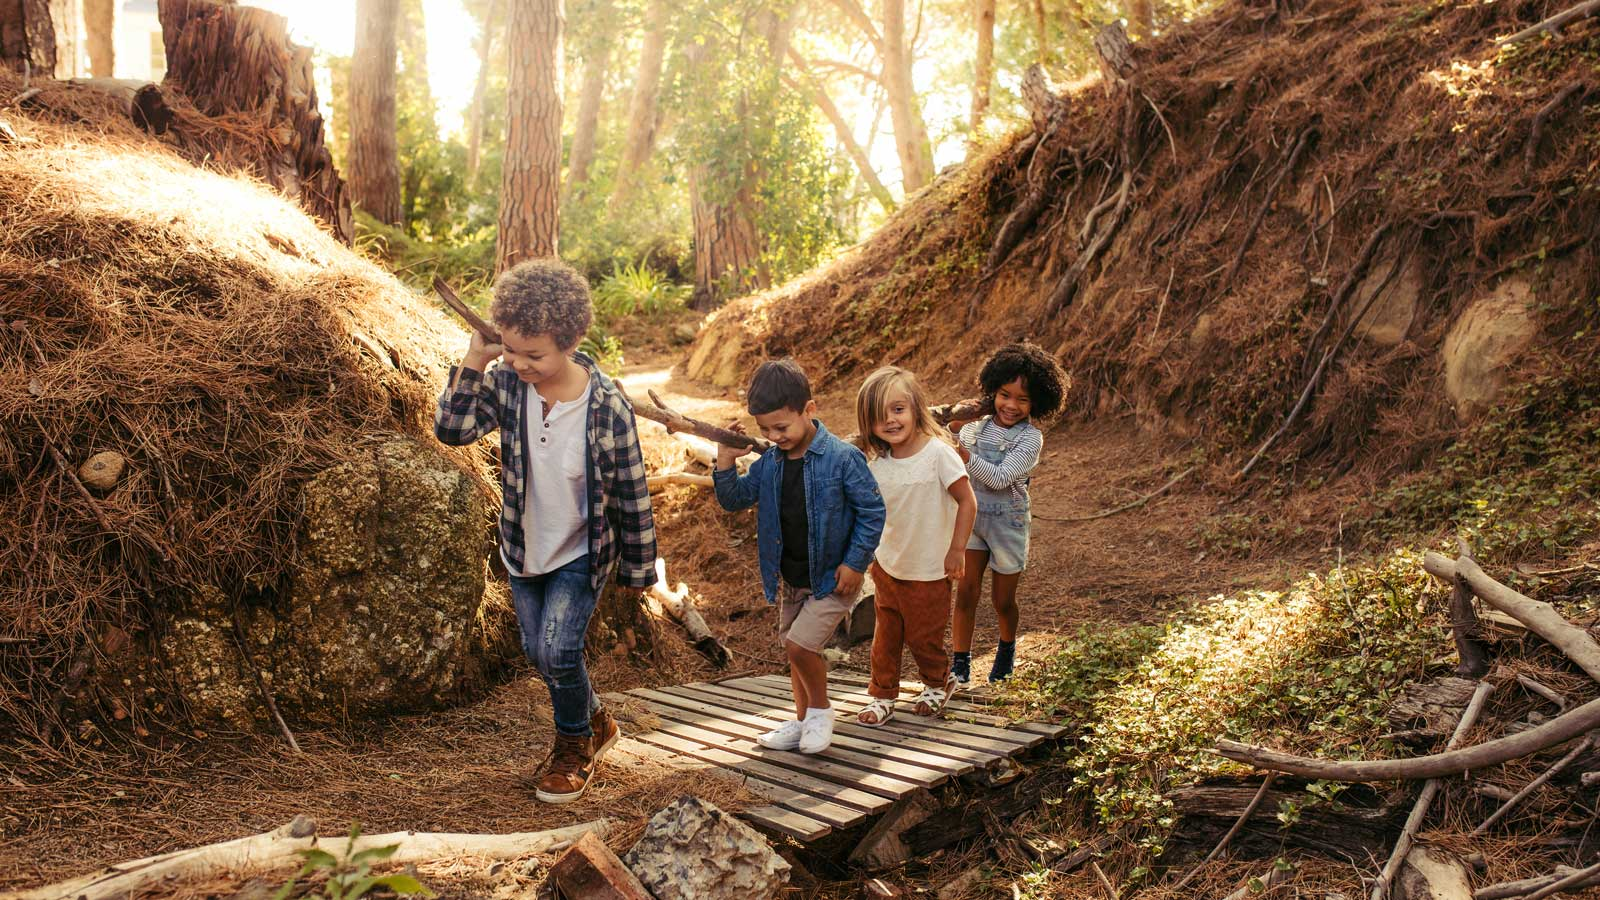 Four children in a forest working together to carry a large log up a path